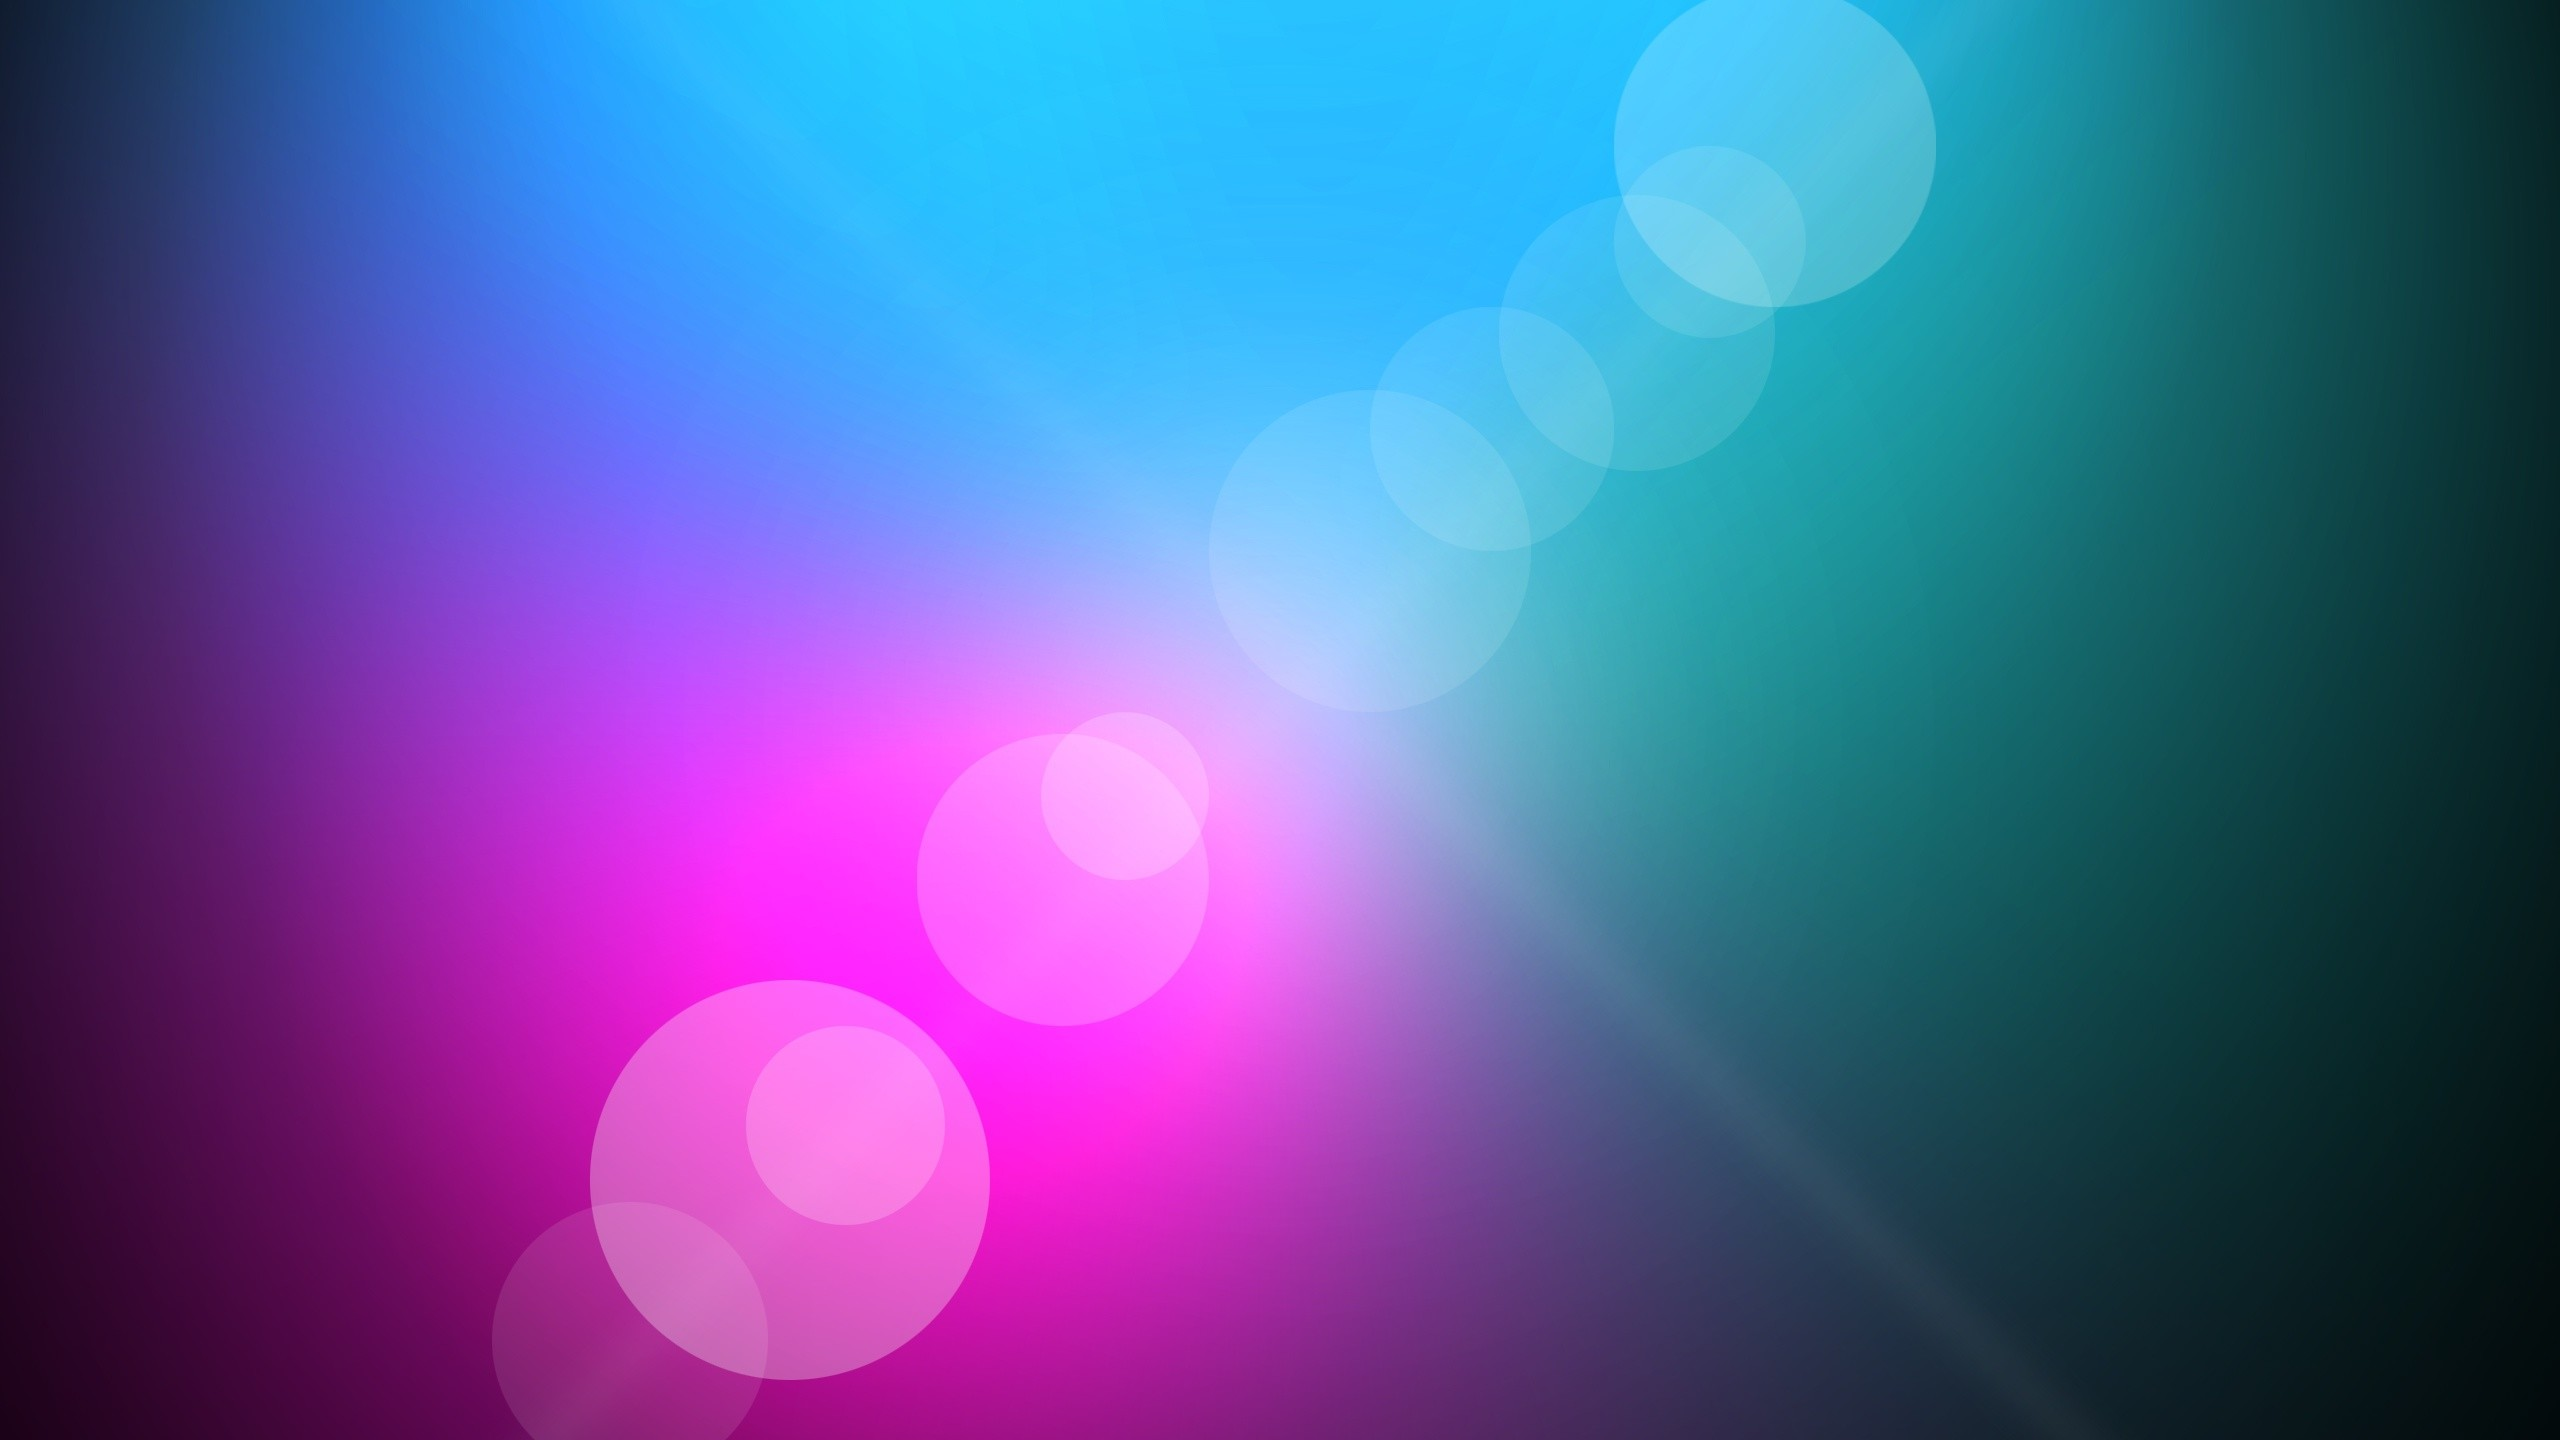 Blue and Pink Background